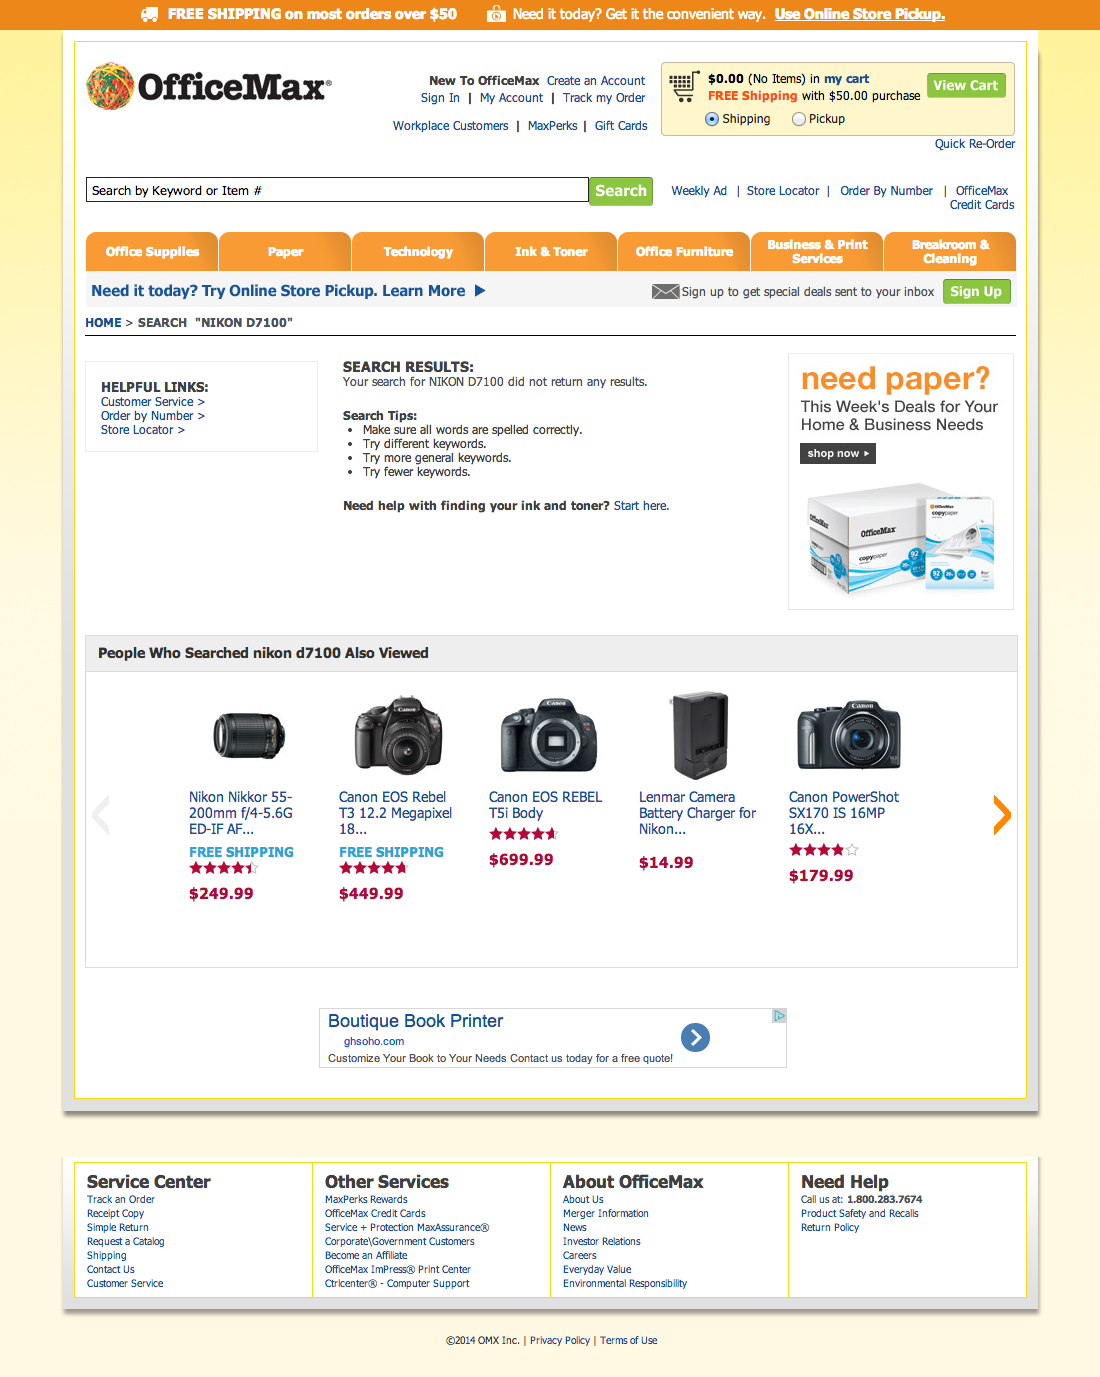 OfficeMax's No Results Page